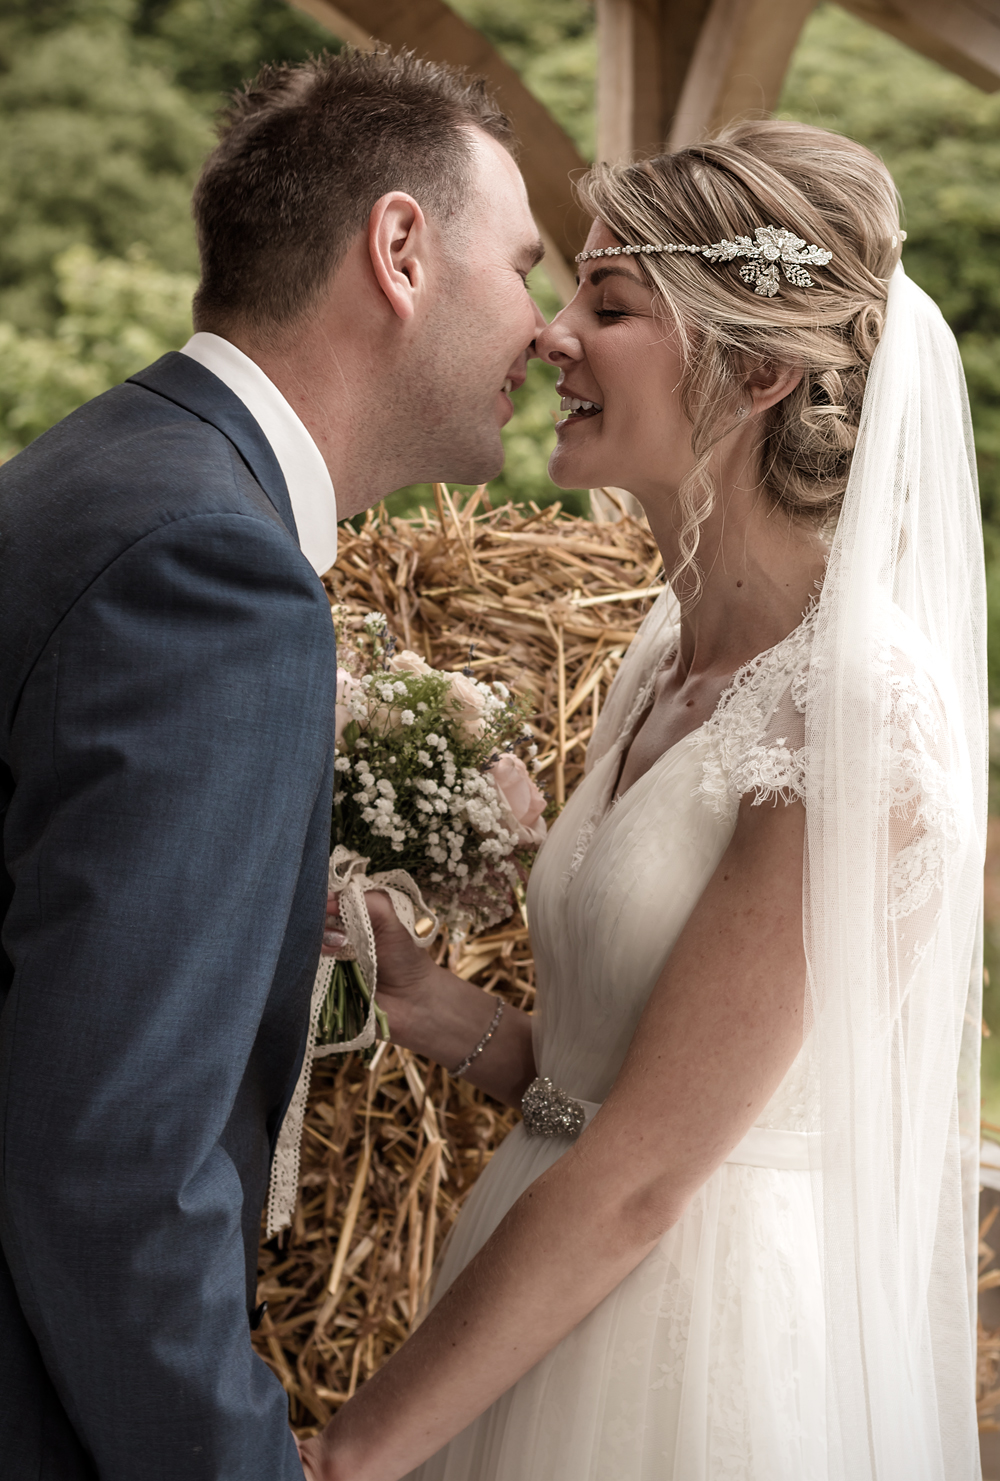 A Rustic Country Wedding at Knightor Winery - Image 22